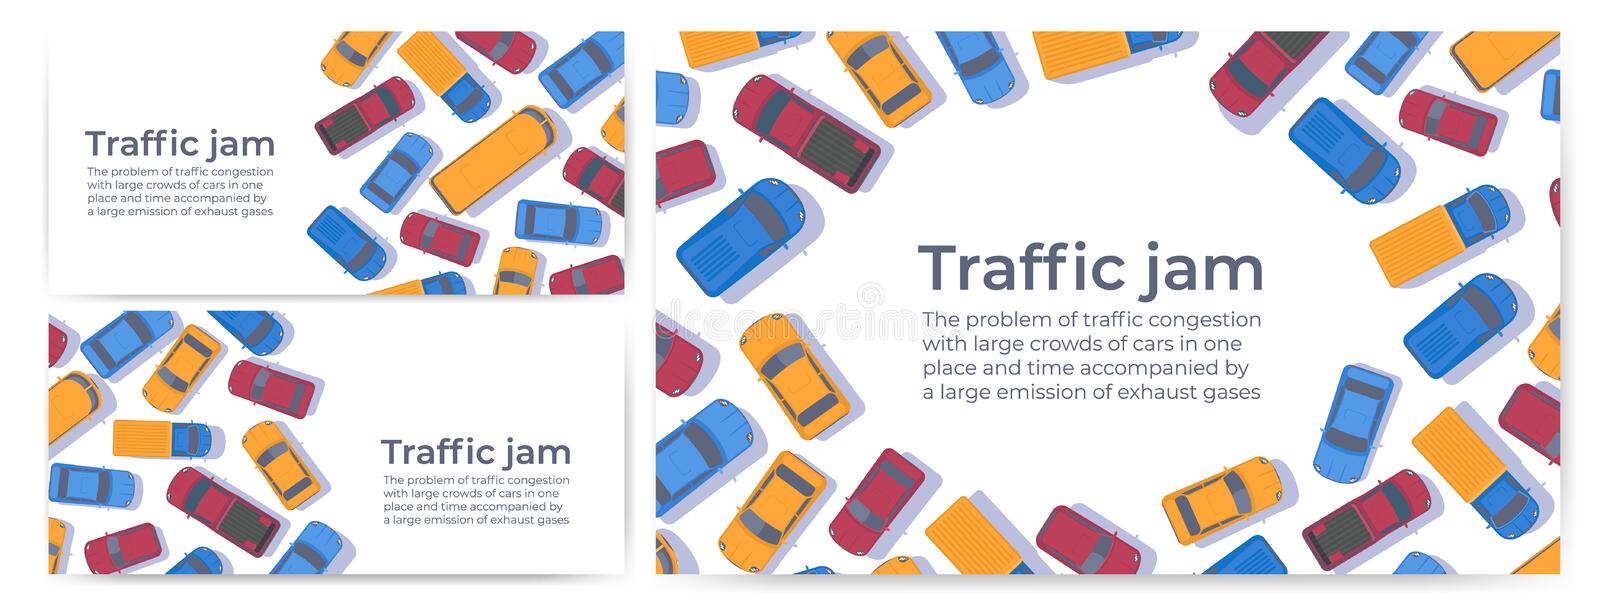 Traffic jam. Large congestion of cars. Web banner or poster design template. Top view vector flat illustration royalty free illustration